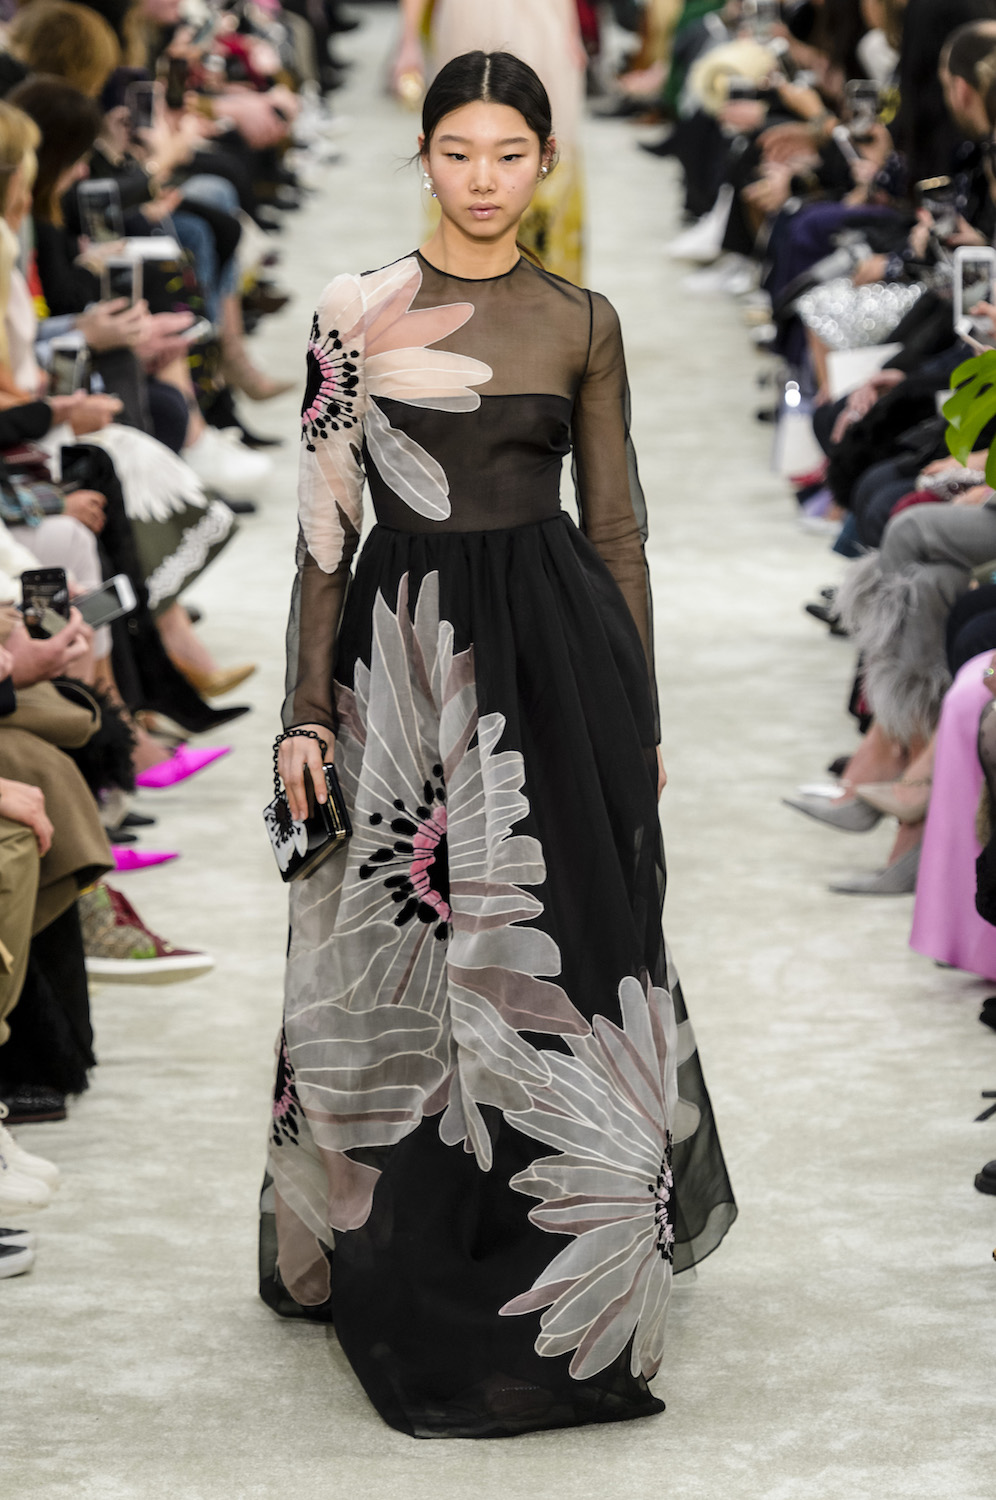 The Modest Fashion Movement Gains Ground at Valentino